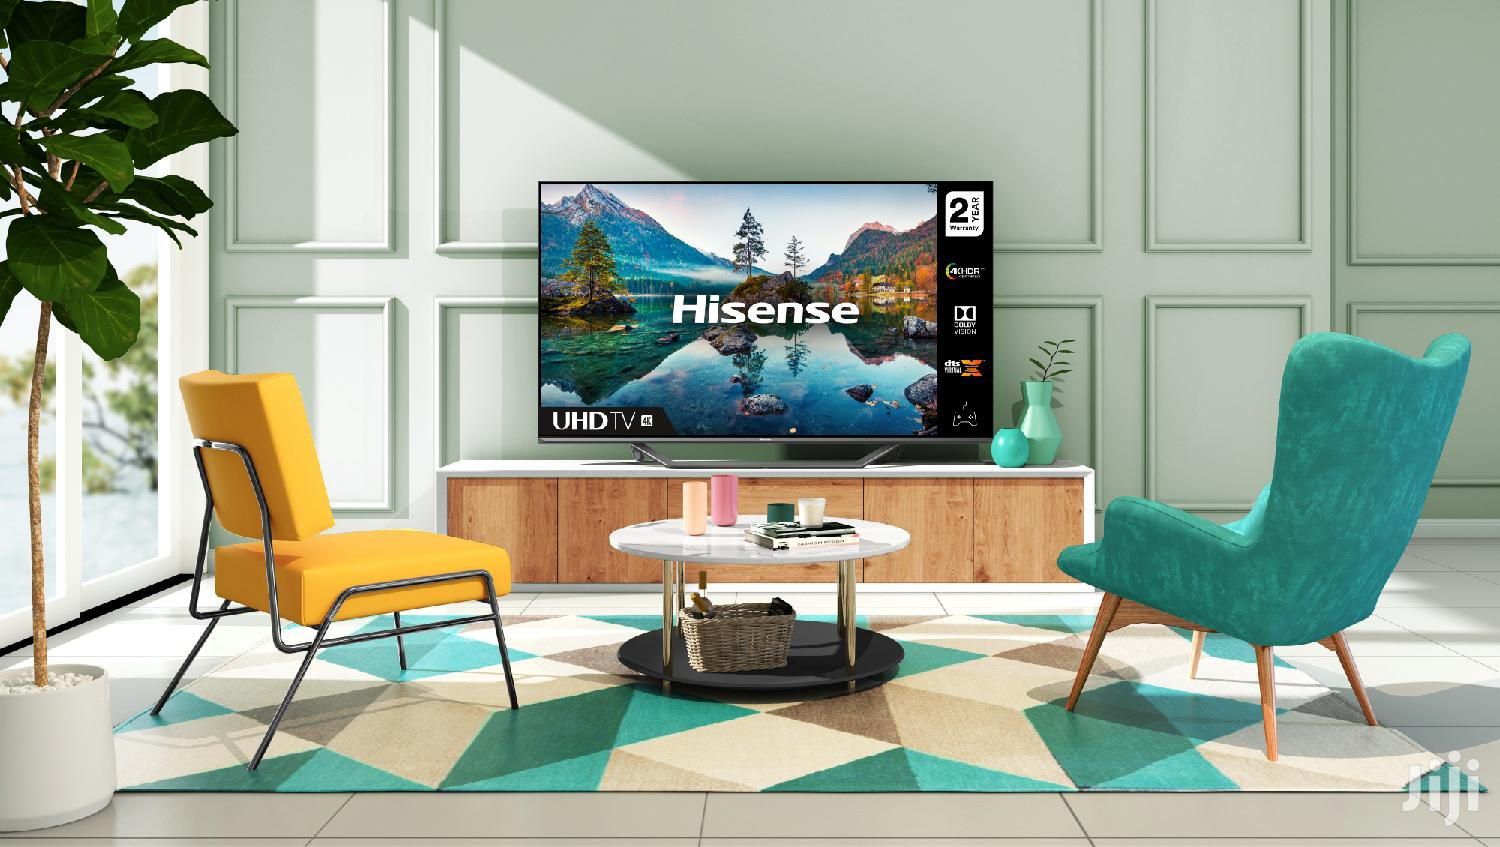 Hisense 50inch 4K Hdr LED Android Tv(50A71F)